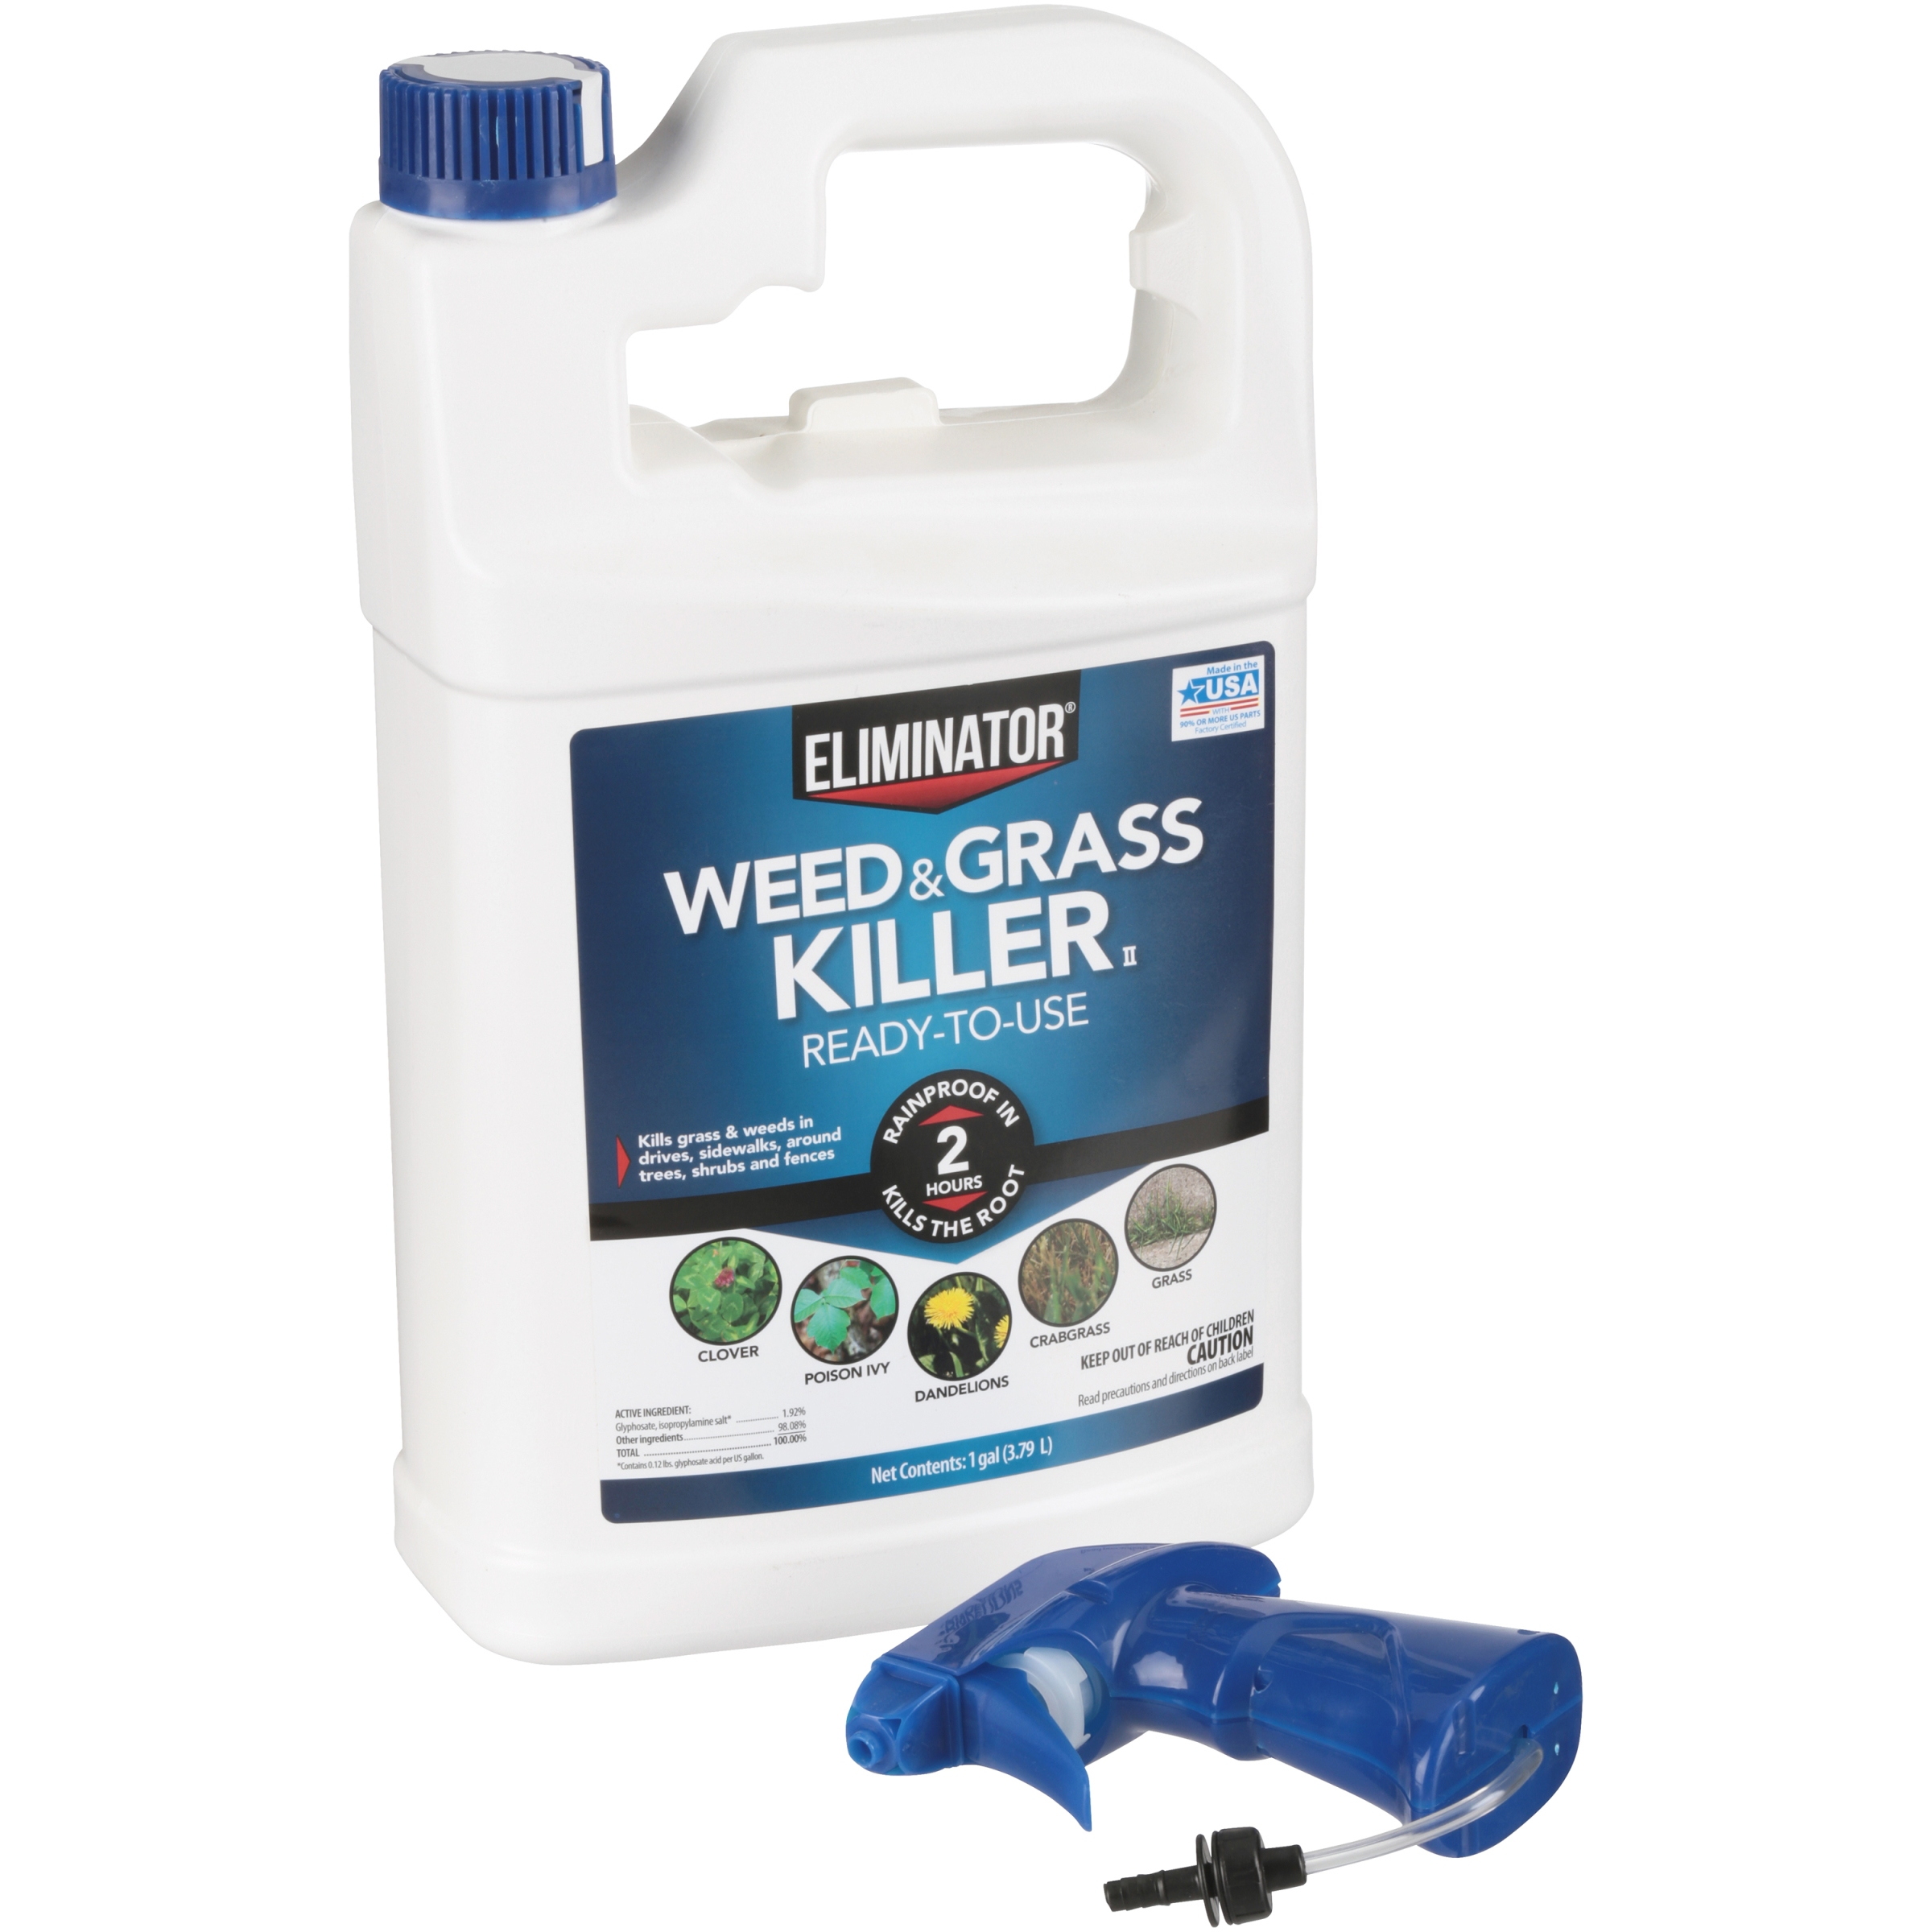 Eliminator Weed And Gr Herbicide Ready To Use Spray 1 Gallon